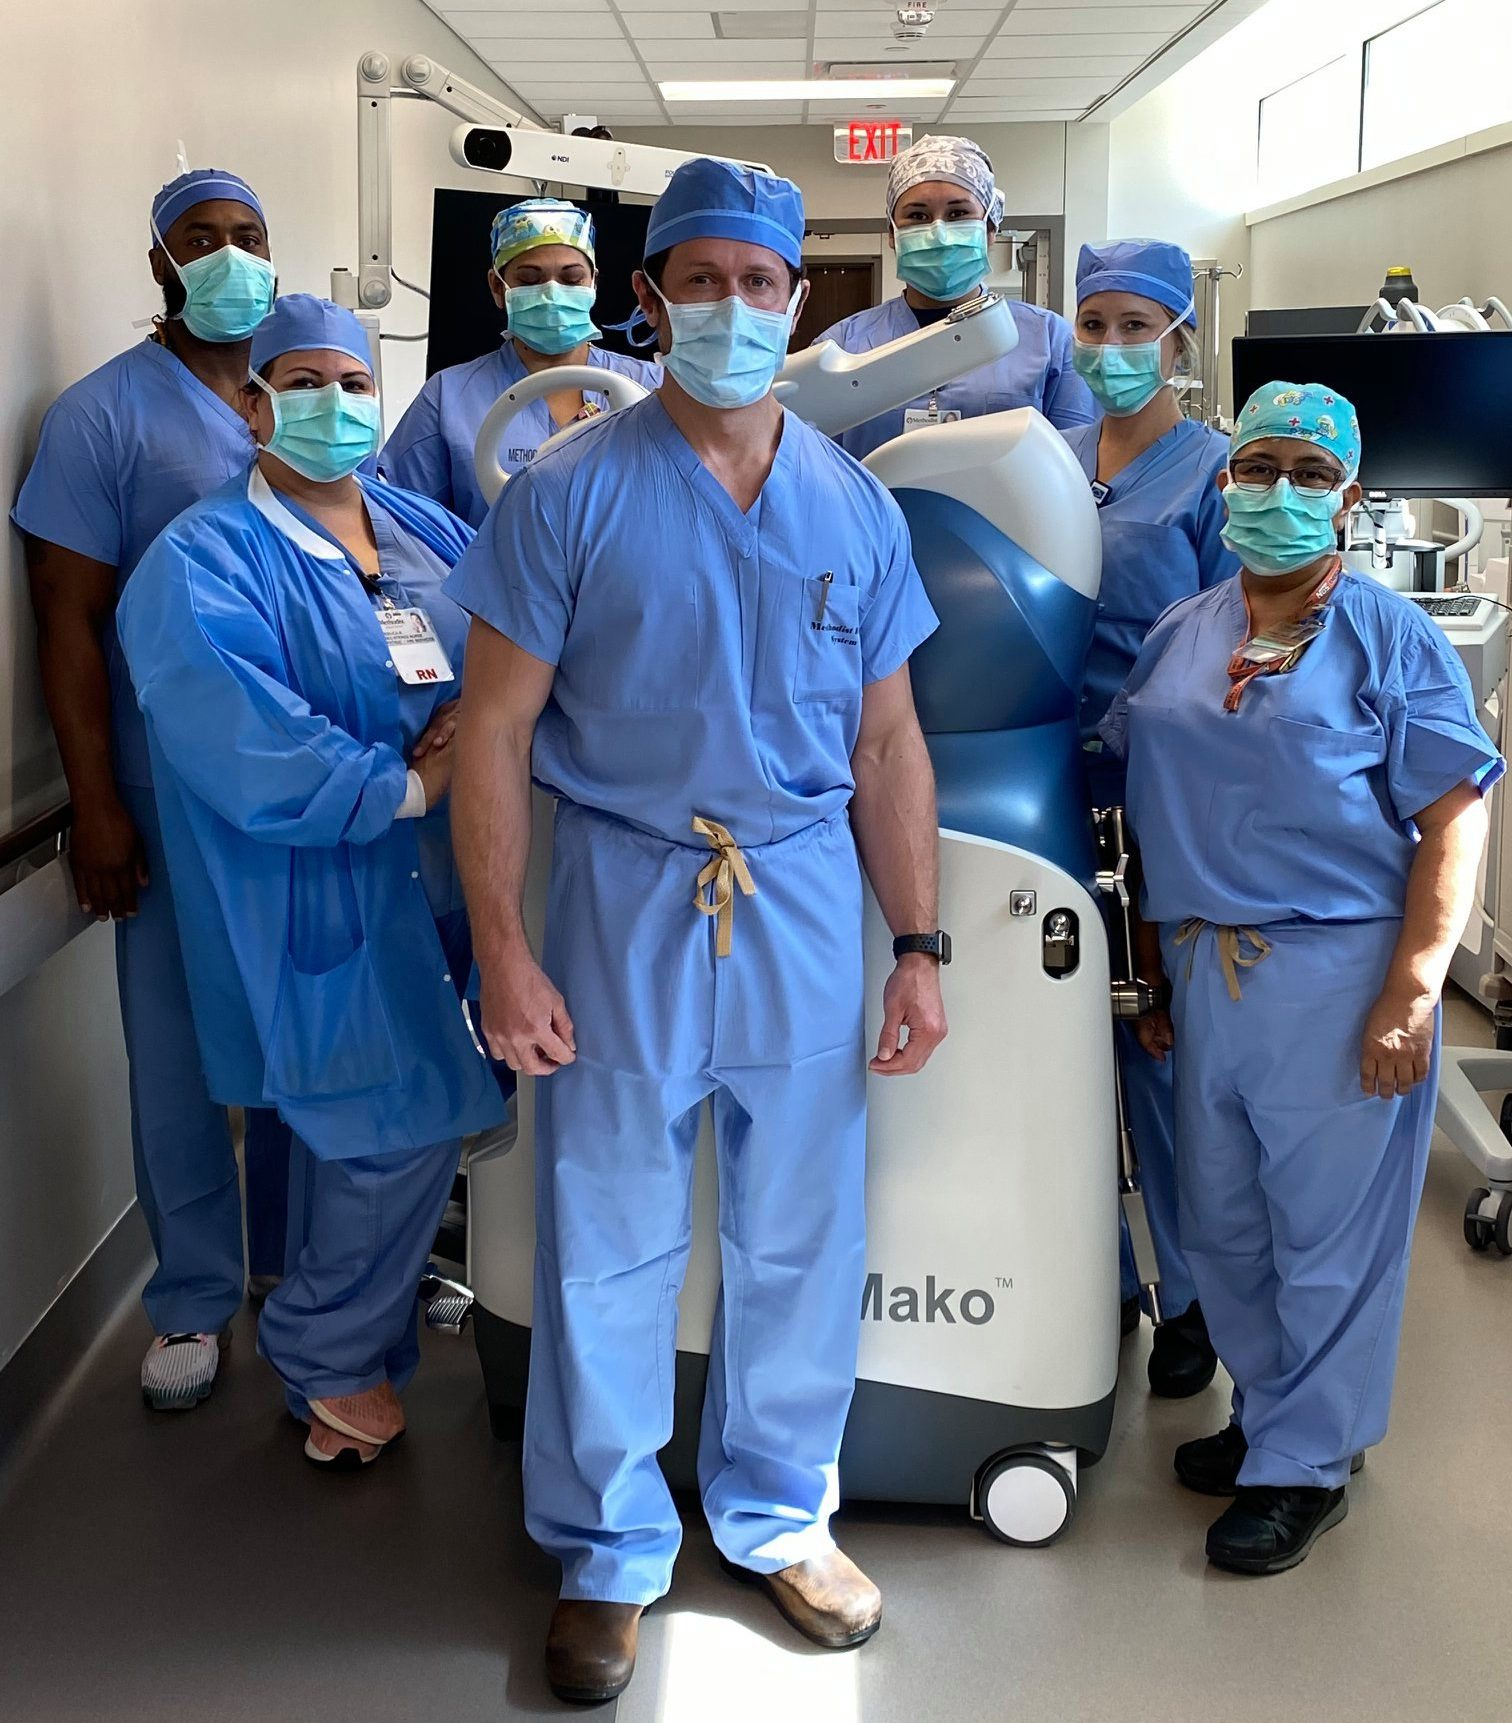 Andrew Chambers, MD and his surgery team in charge of Barbara's robotic surgery